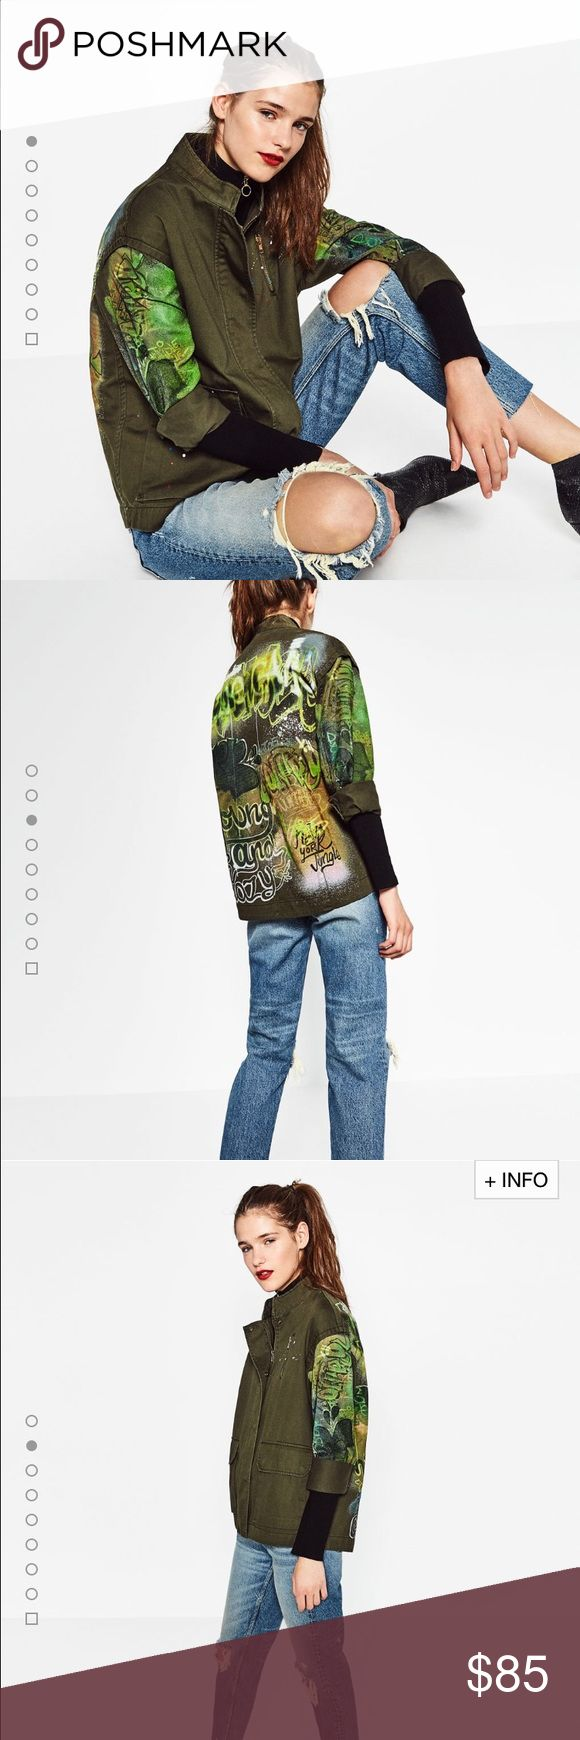 Zara Graffiti Parka, brand new  Woman collection, one of the best parkas Zara Jackets & Coats